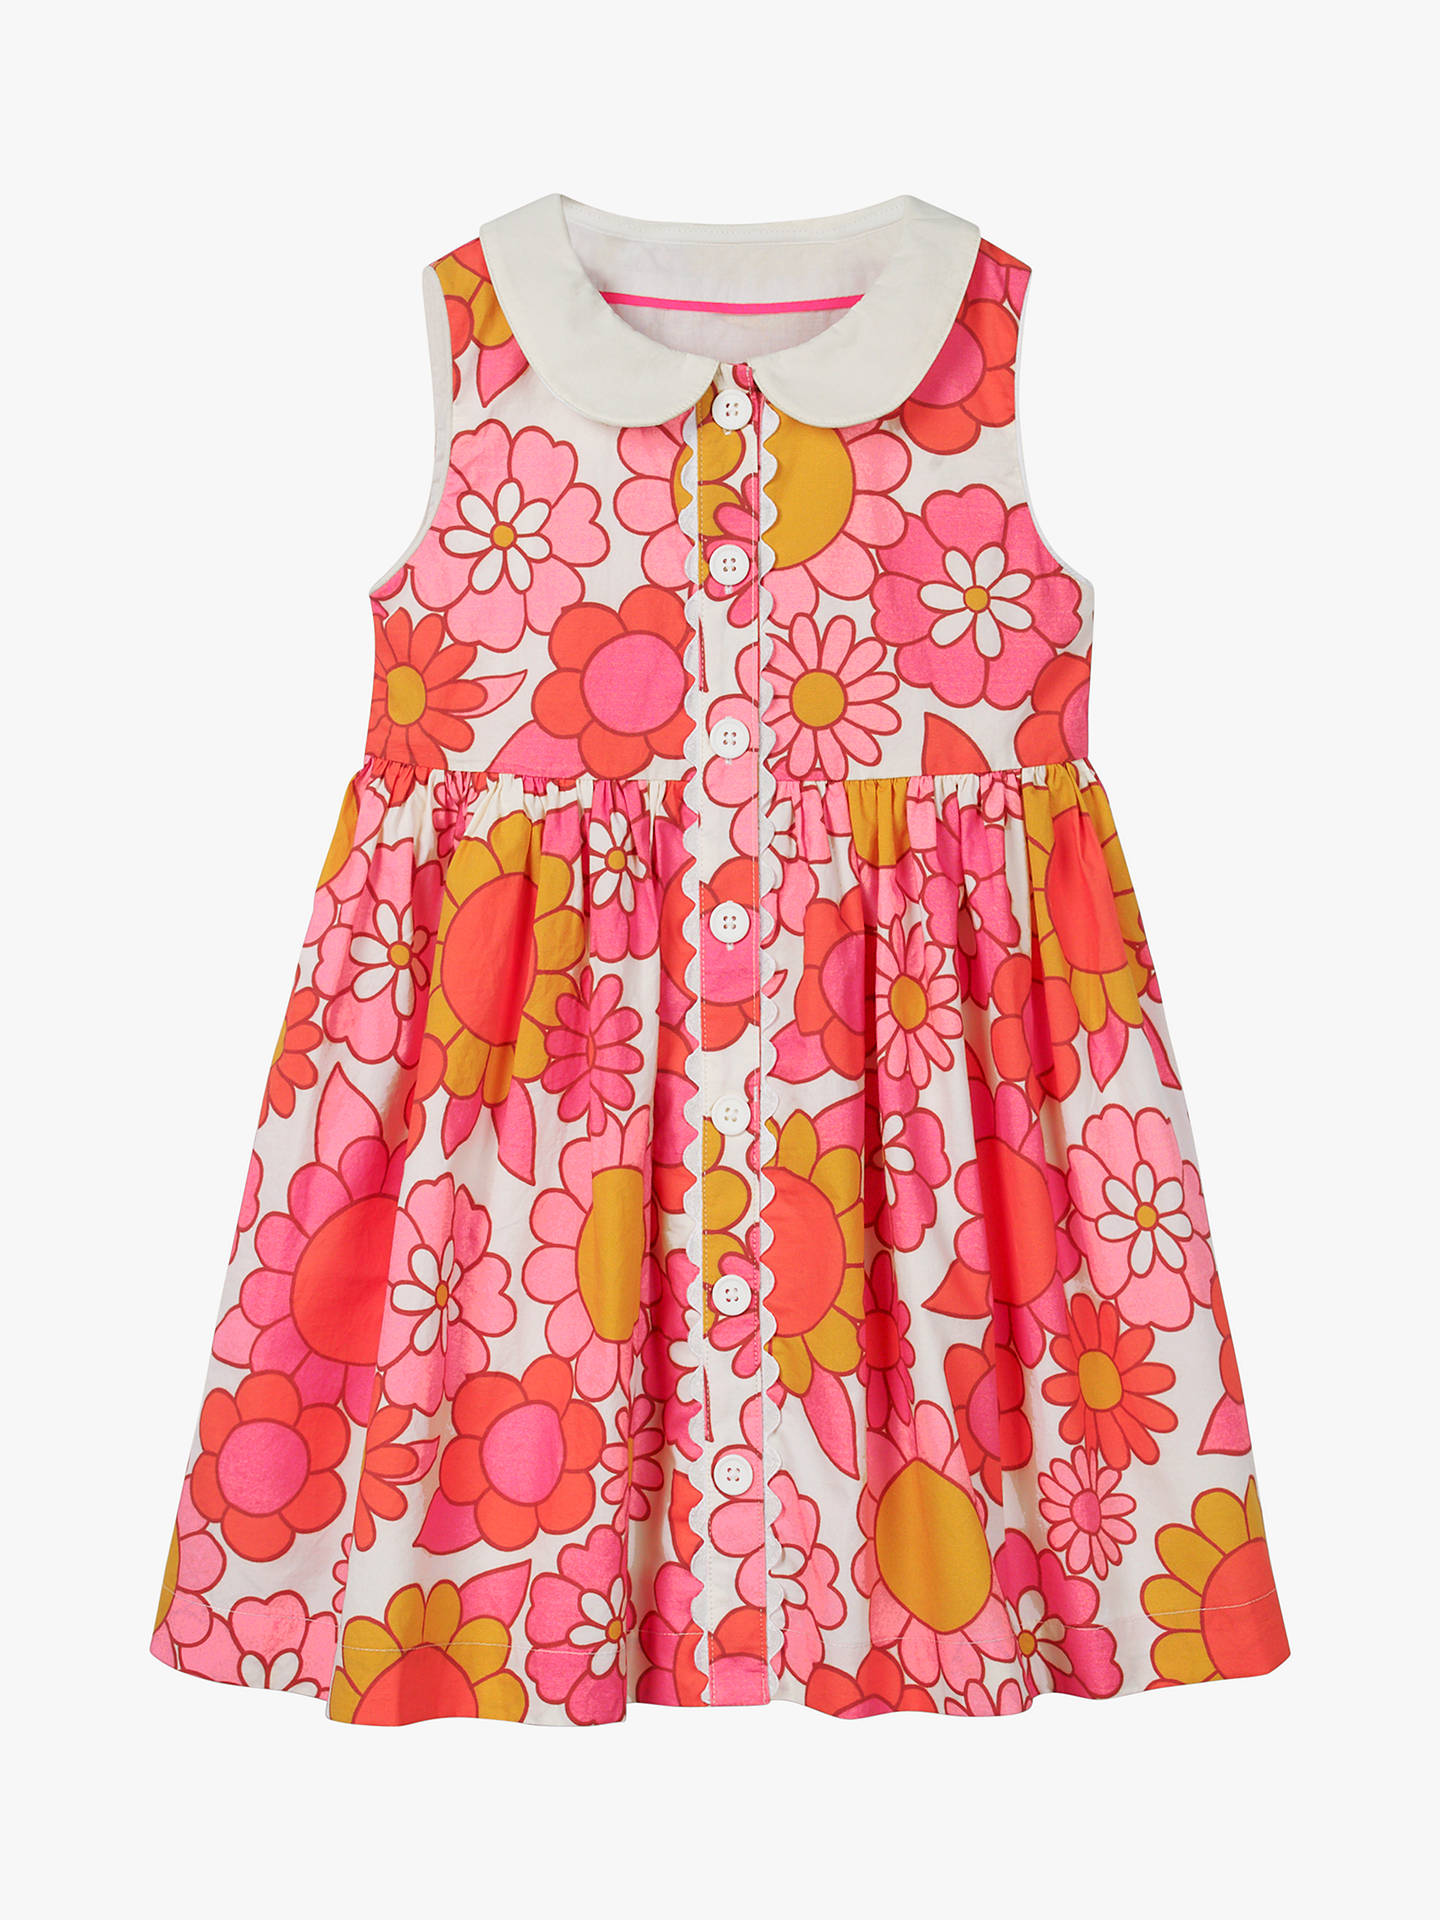 Buy Mini Boden Girls' Woven Floral Collared Dress, Pink/White, 2-3 years Online at johnlewis.com